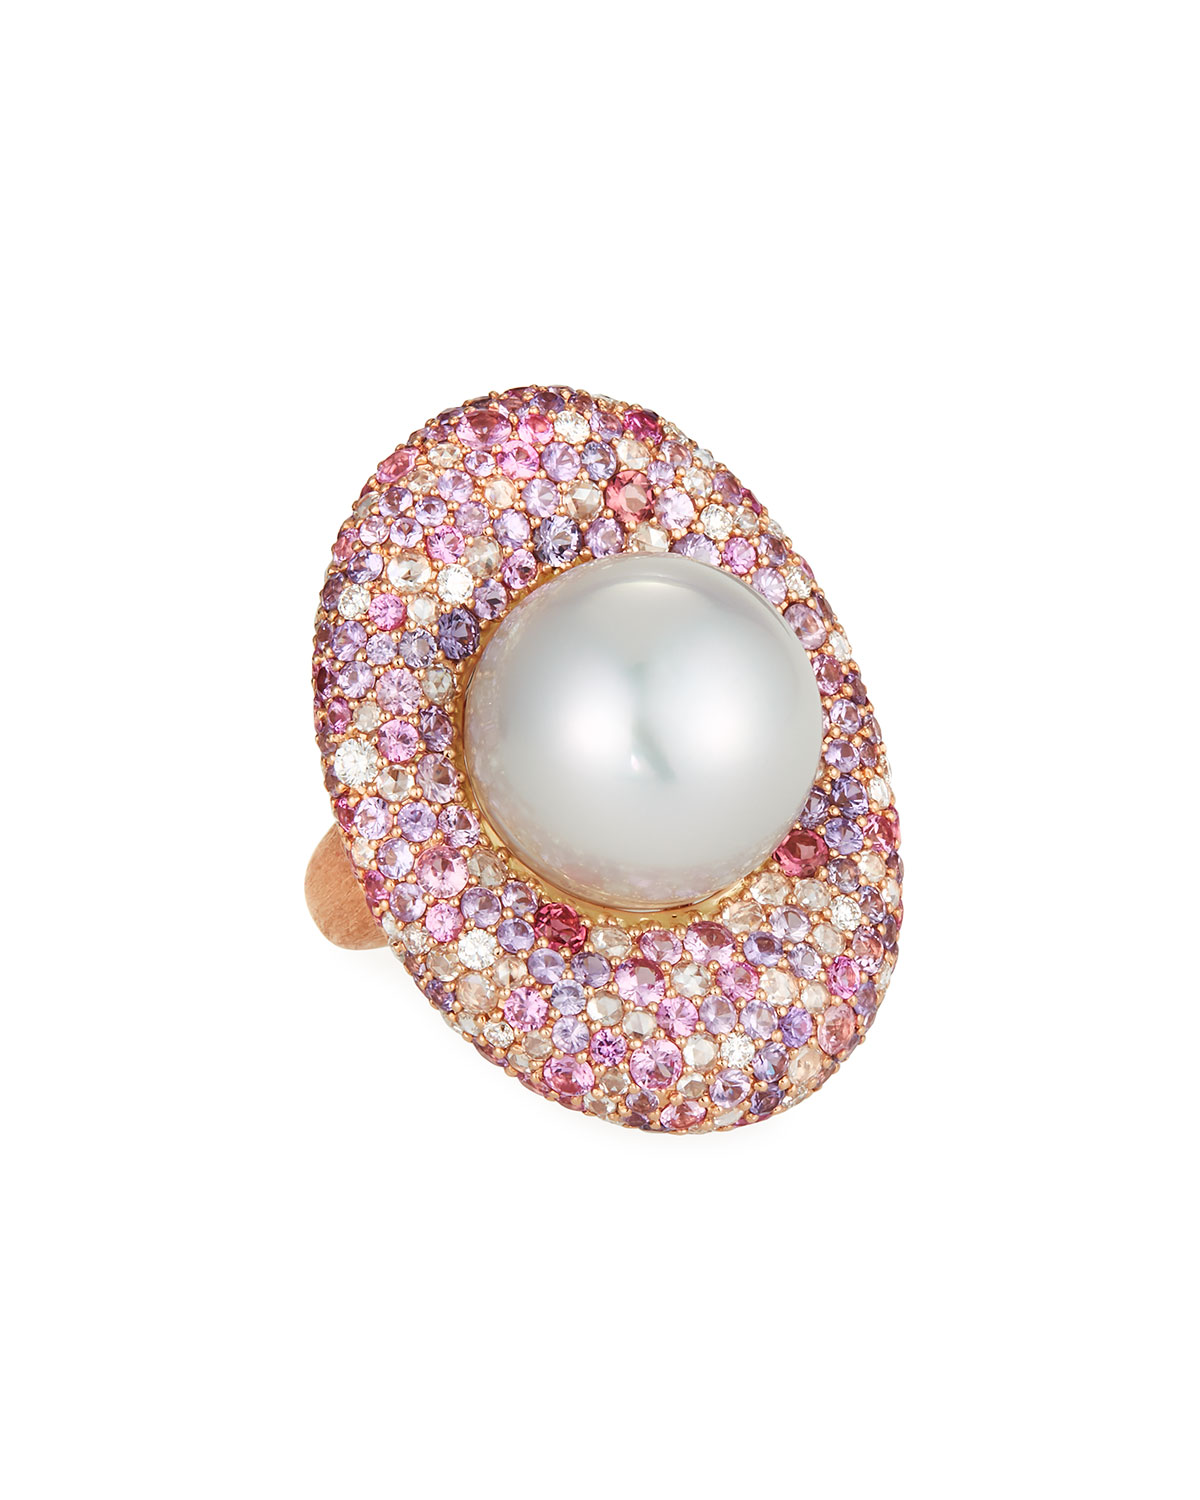 MARGOT MCKINNEY JEWELRY 18K Rose Gold & South Sea Pearl Cocktail Ring, 16.6Mm, Size 6.5